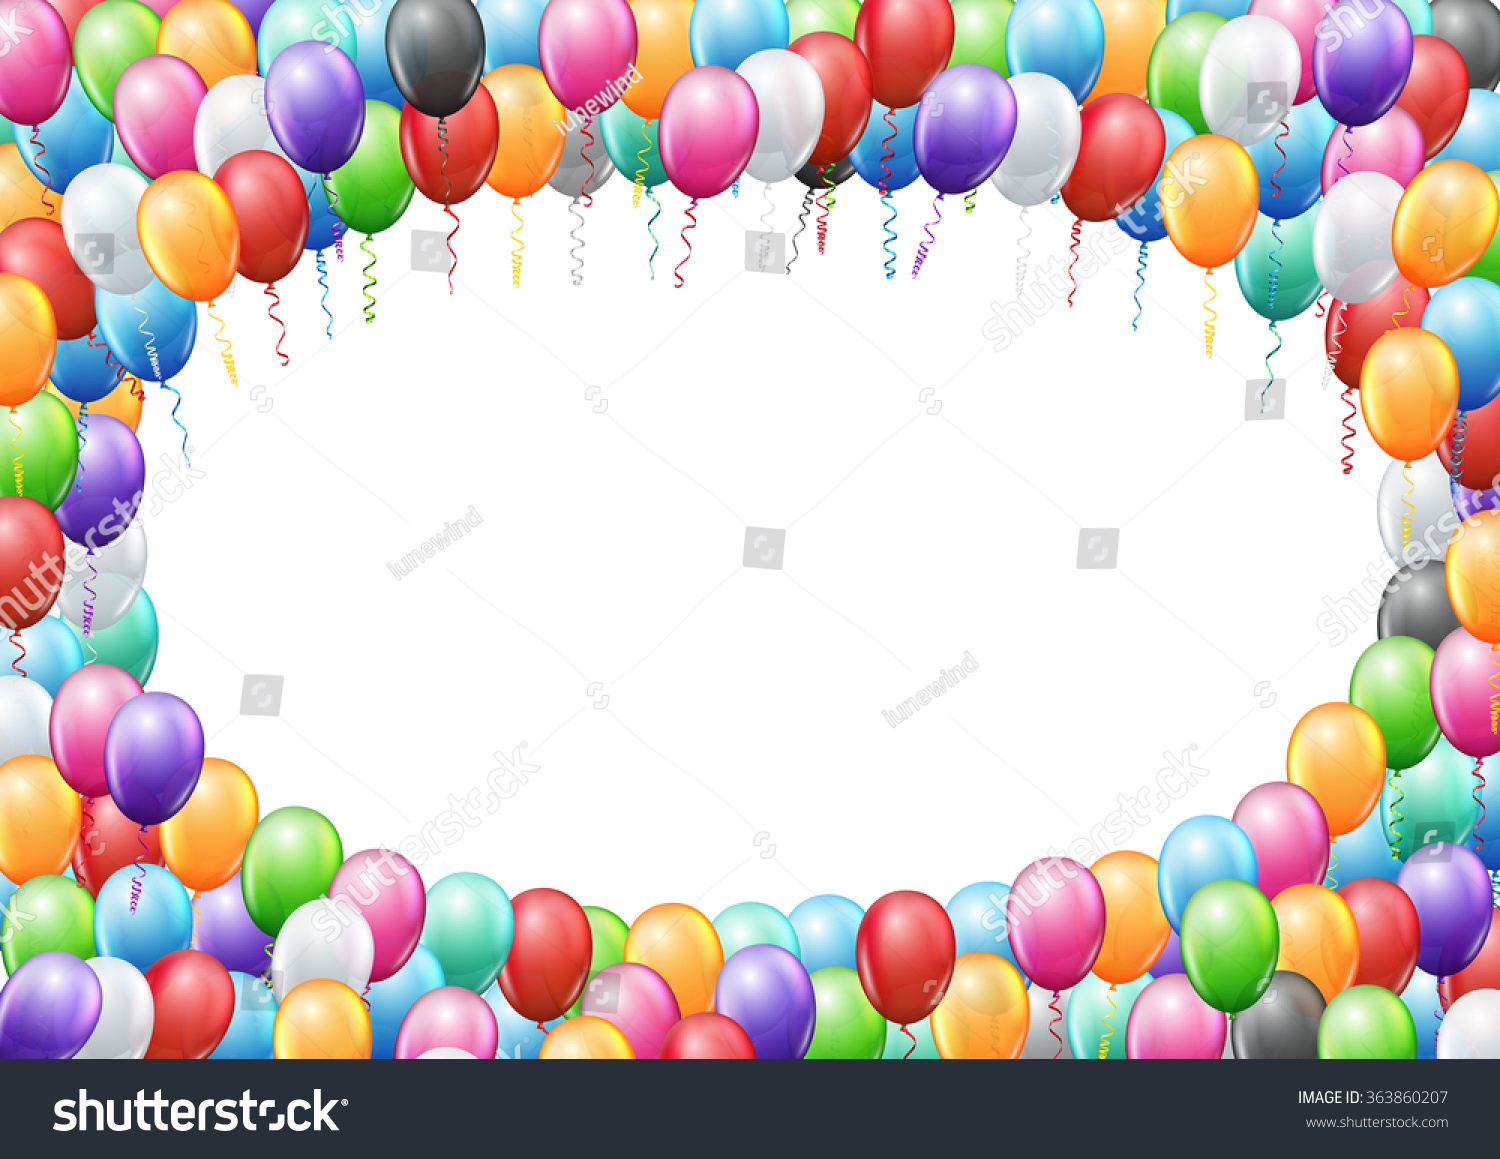 colored balloons frame a4 proportions page template for birthday or party invitation vector background